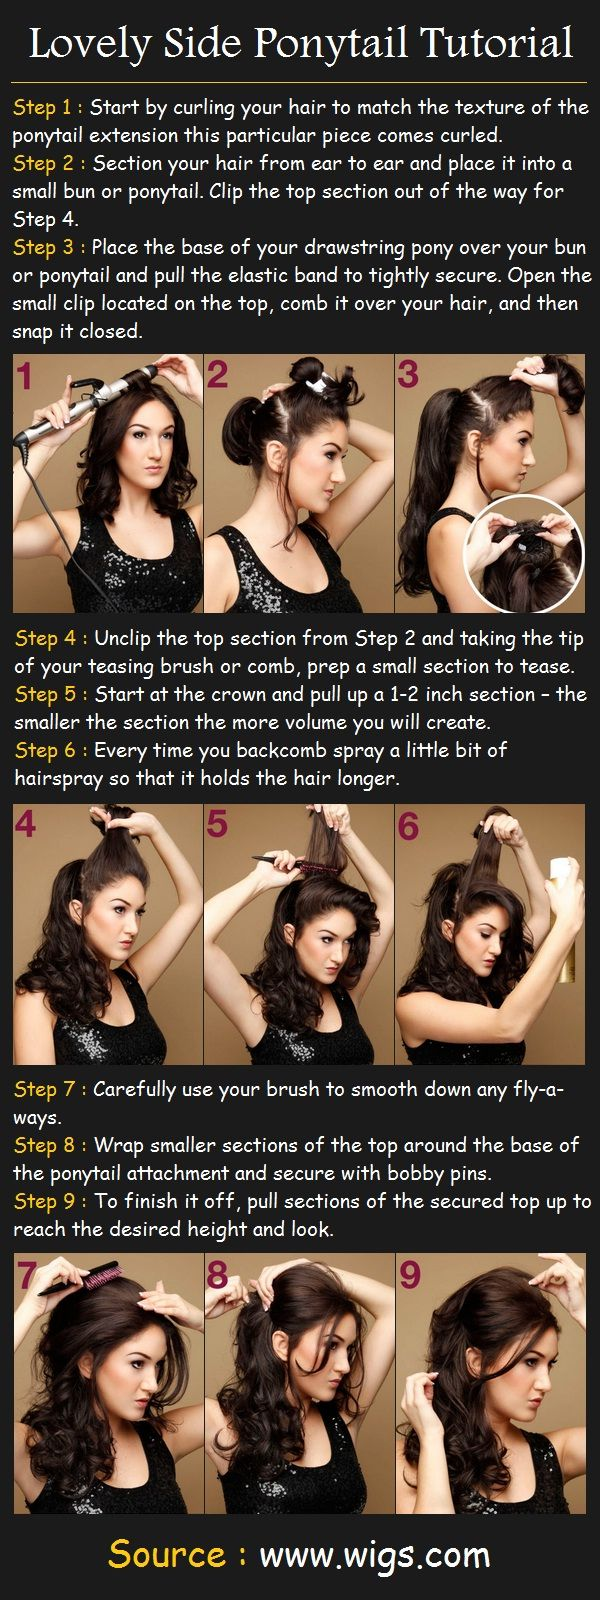 Lovely Side Ponytail Tutorial | Pinterest Tutorials